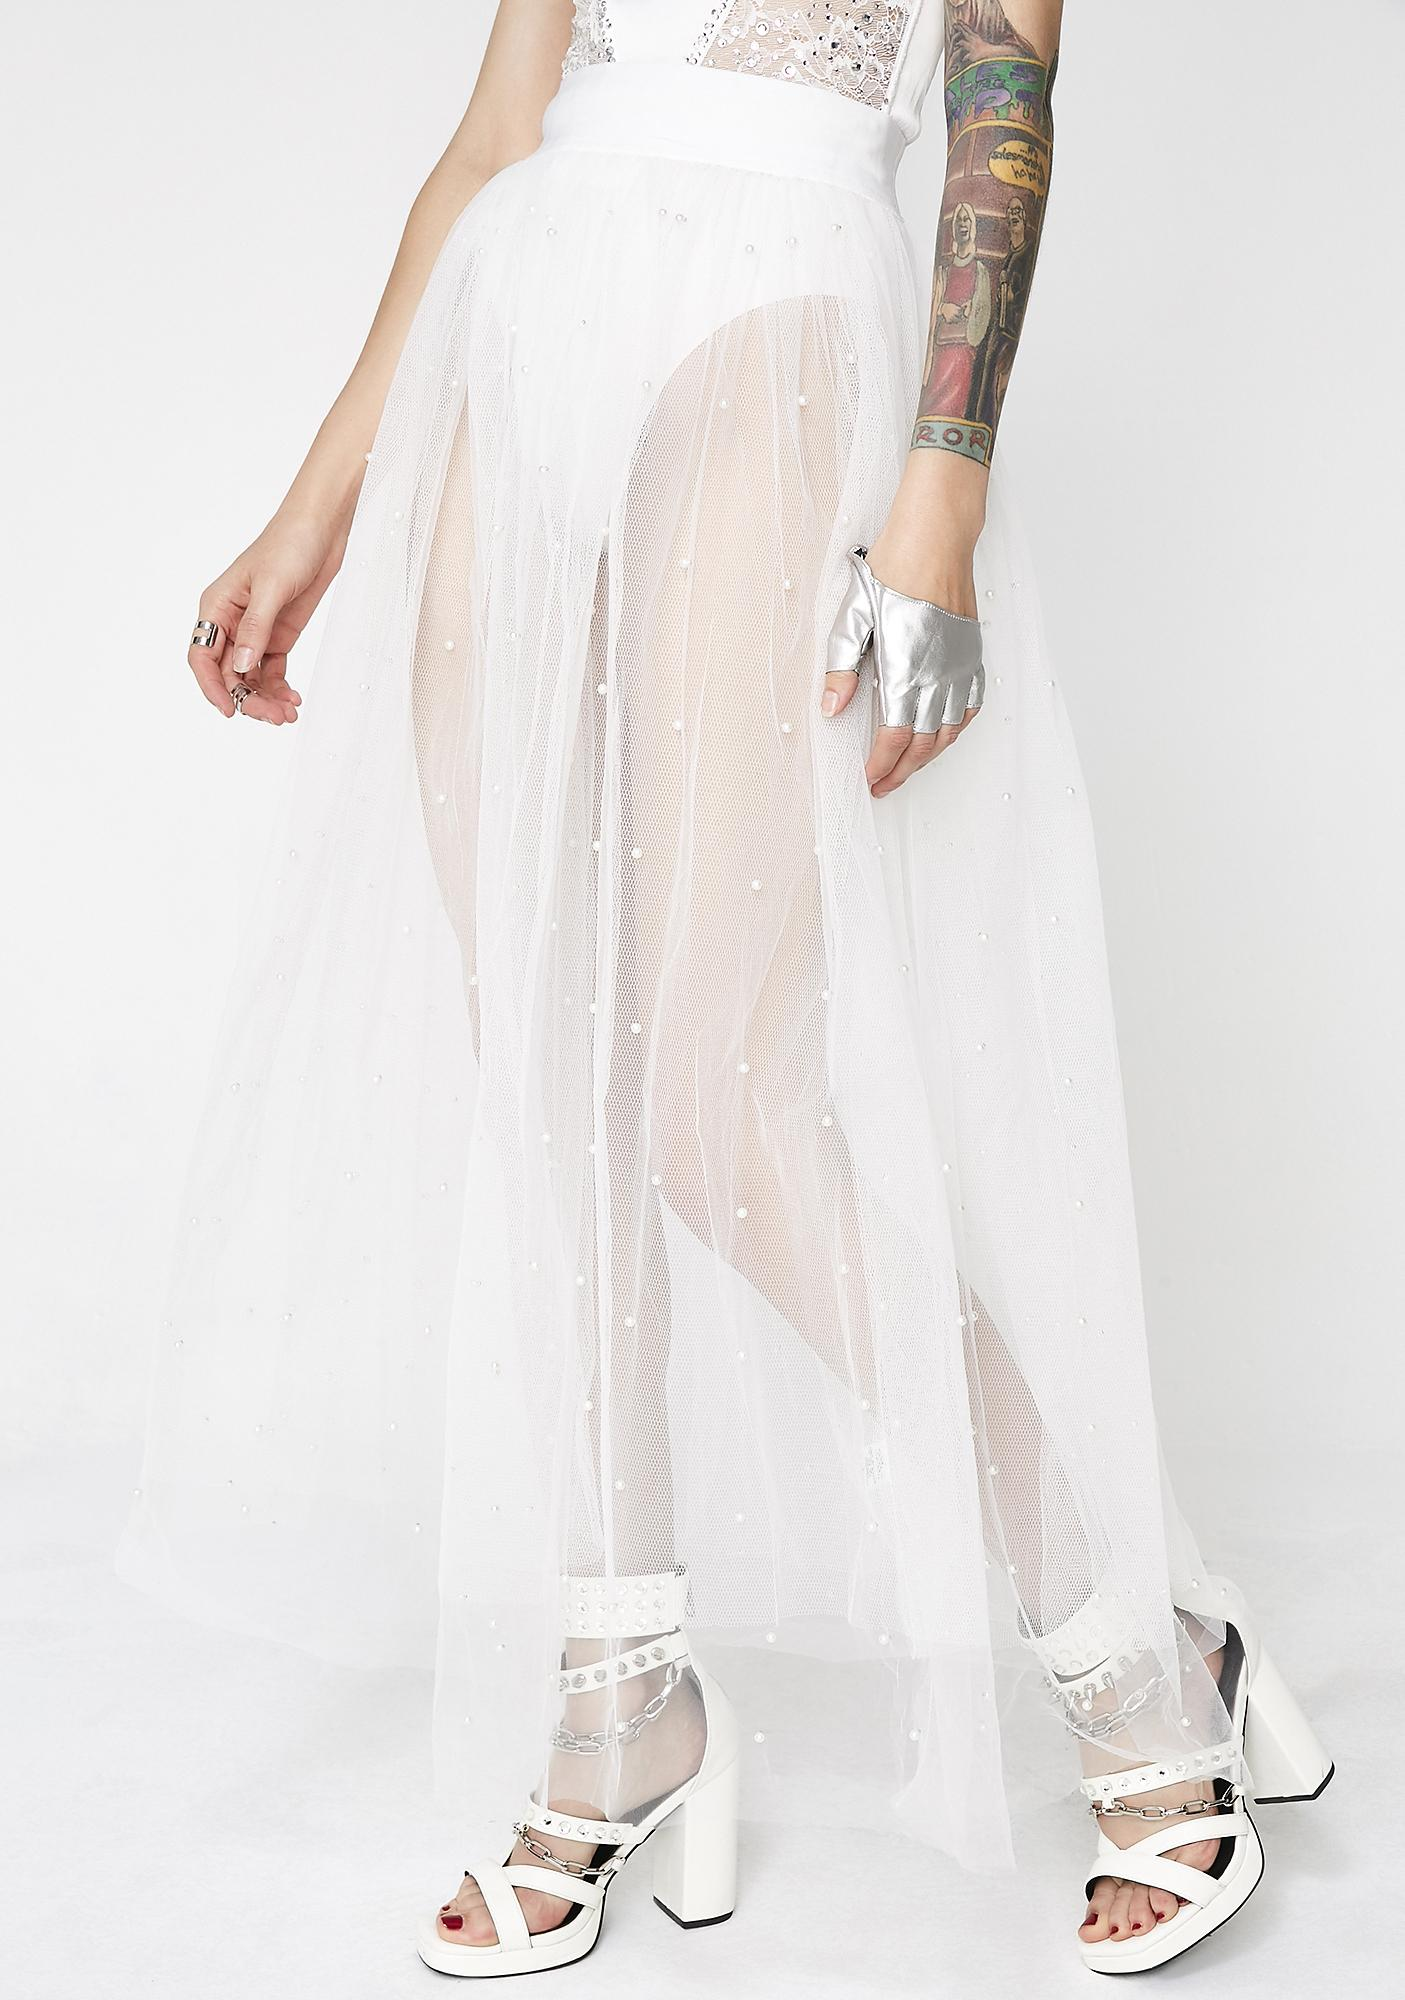 Icy Fake Fairytales Tulle Skirt